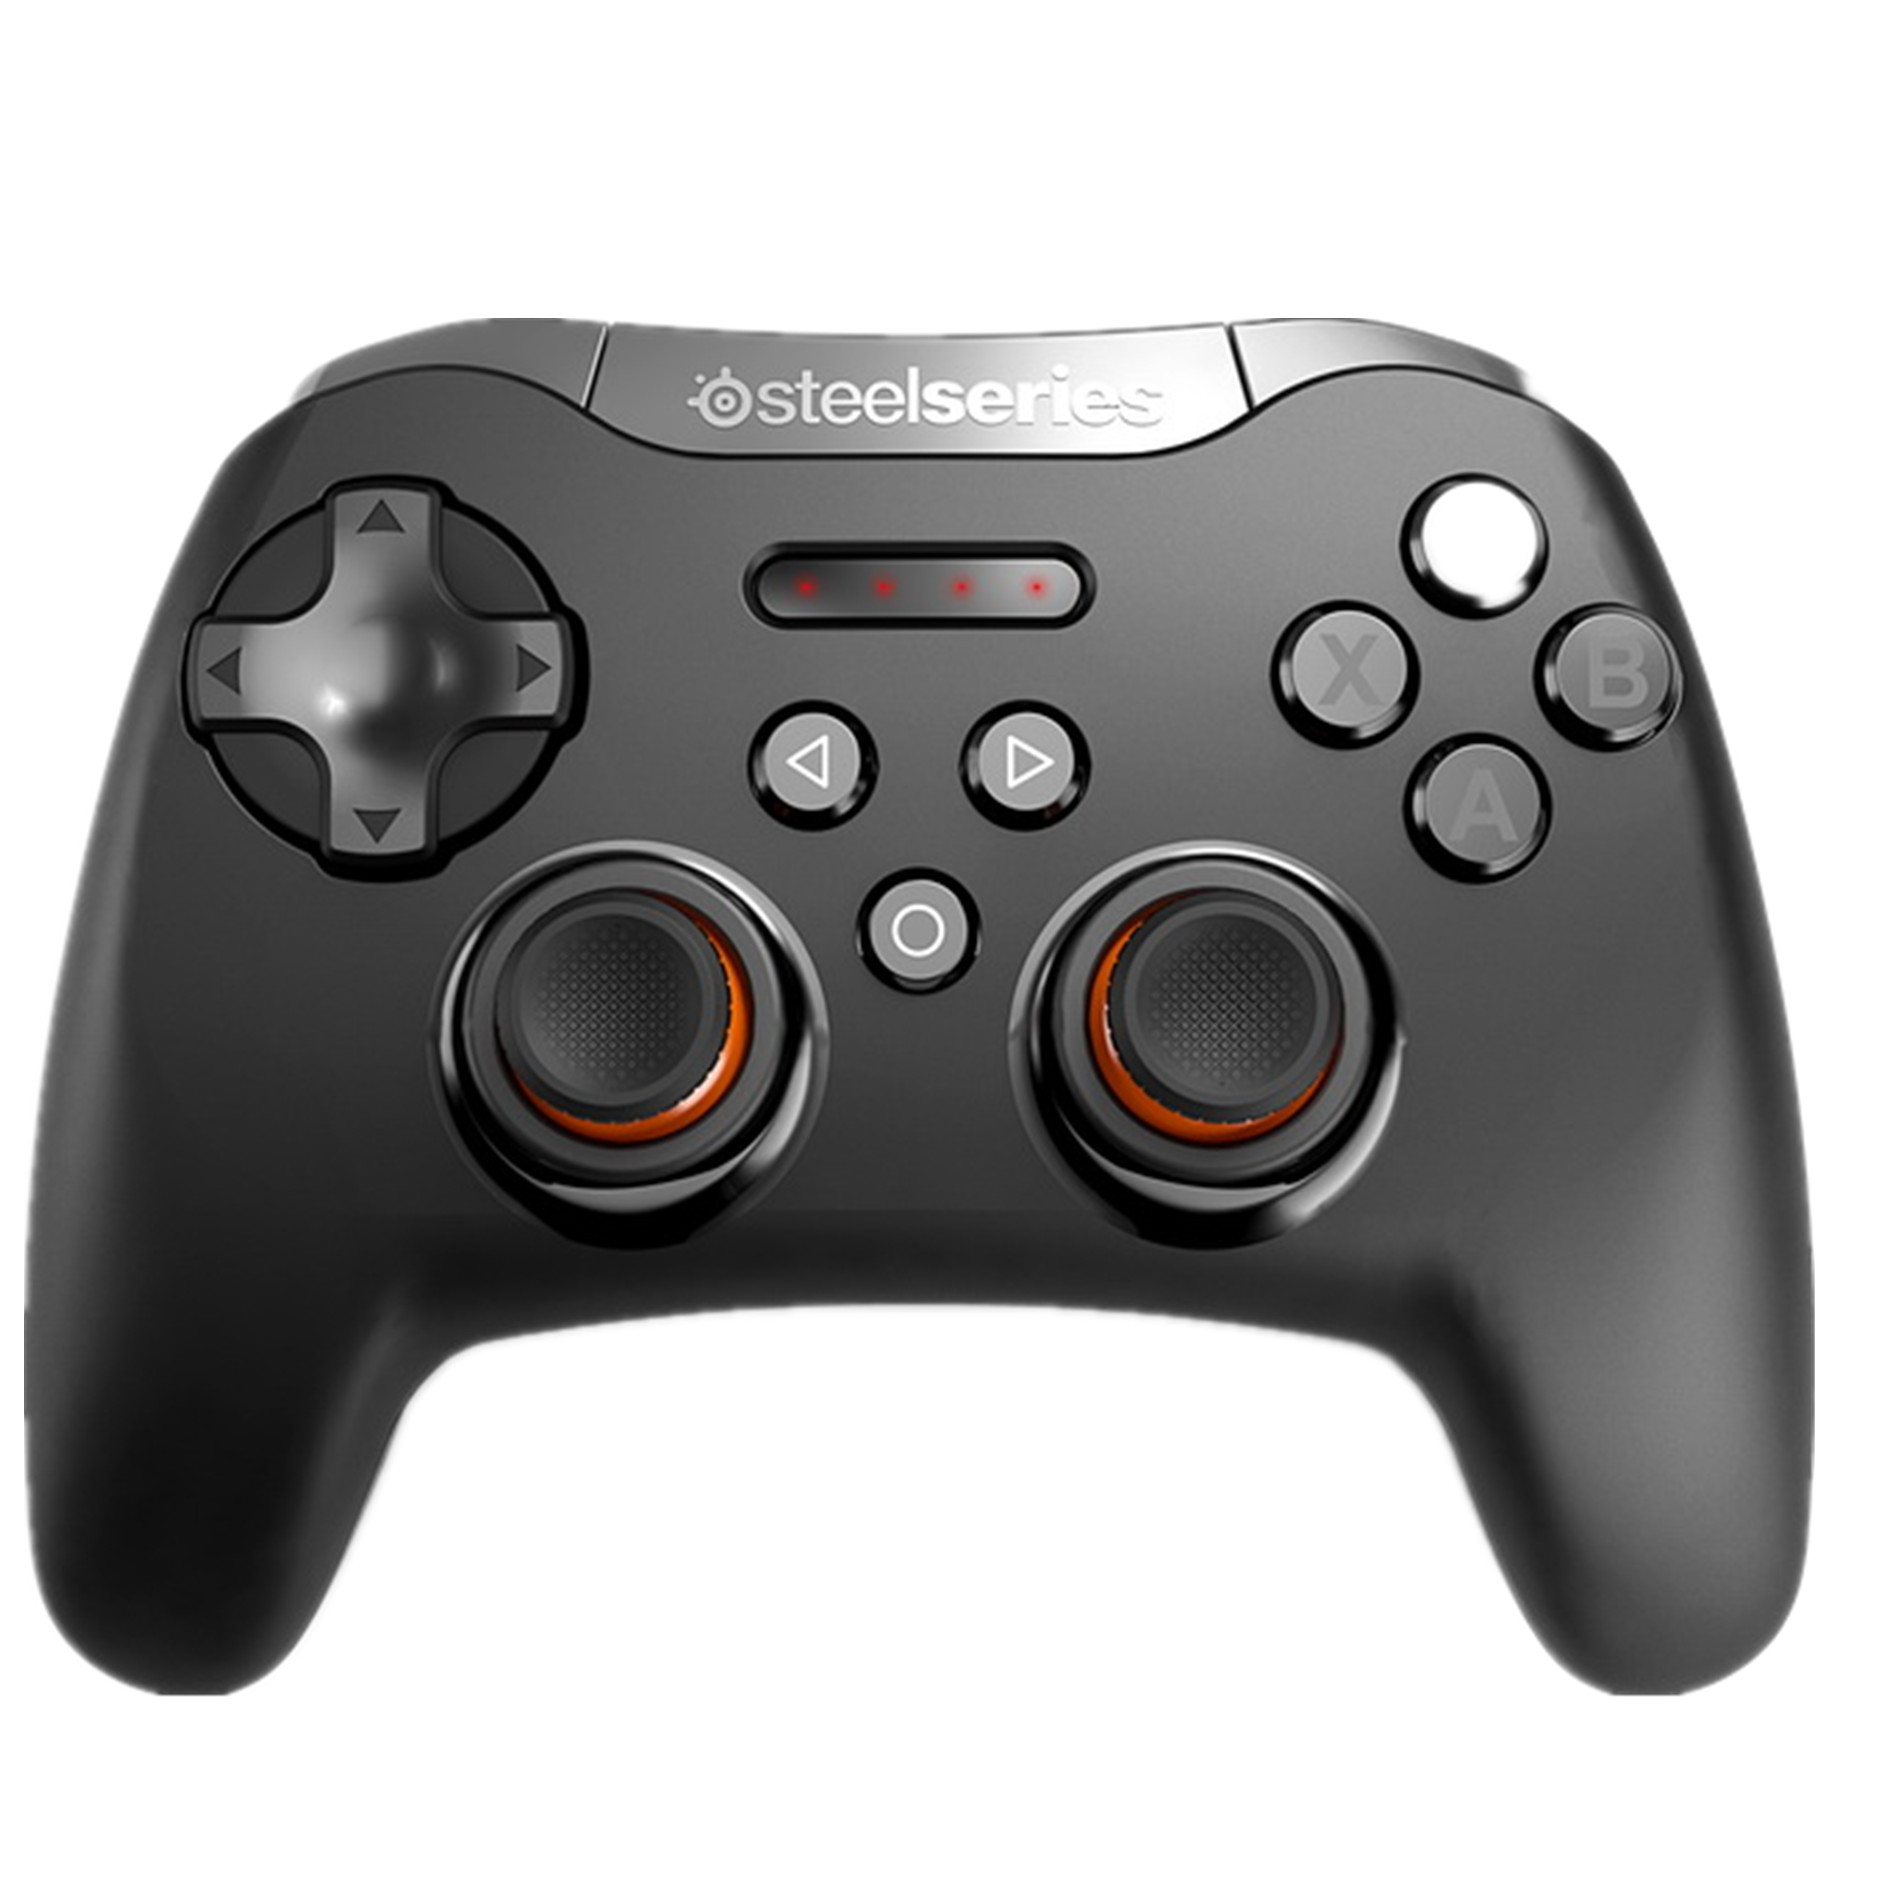 SteelSeries Stratus XL Bluetooth Wireless Gaming Controller Gamepads Android Windows 7 + Bluetooth Support